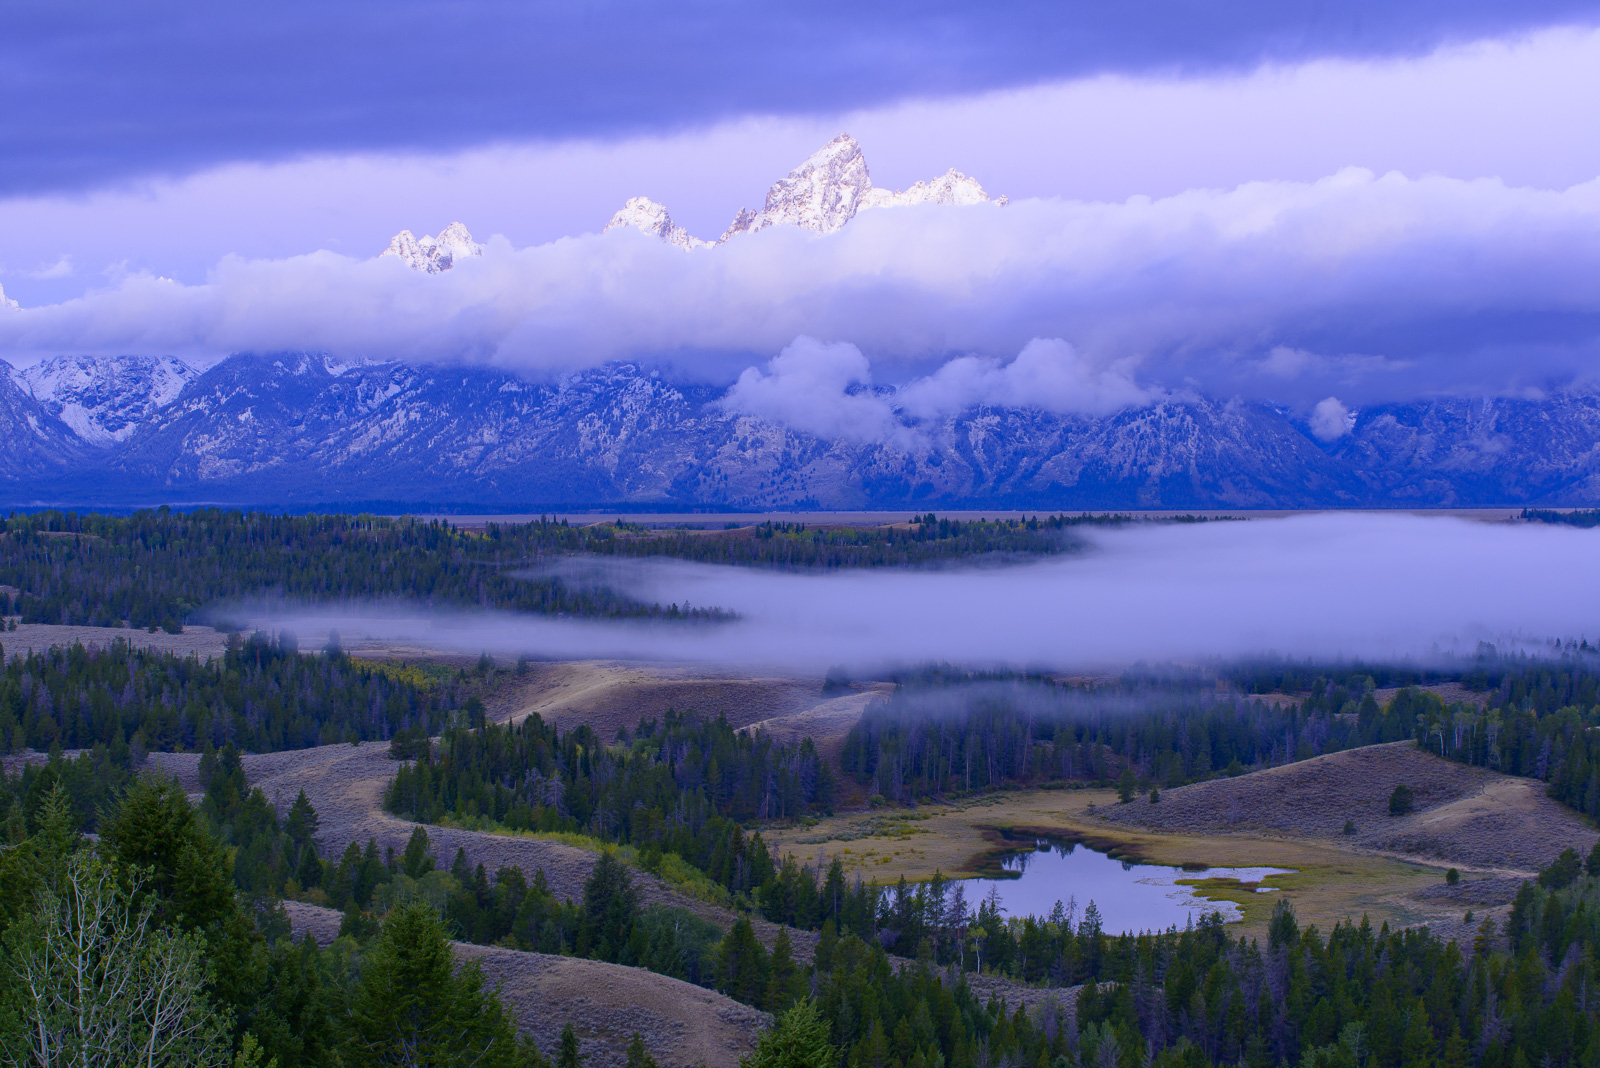 Morning clouds and fog at twilight, Grand Tetons, Wyoming.